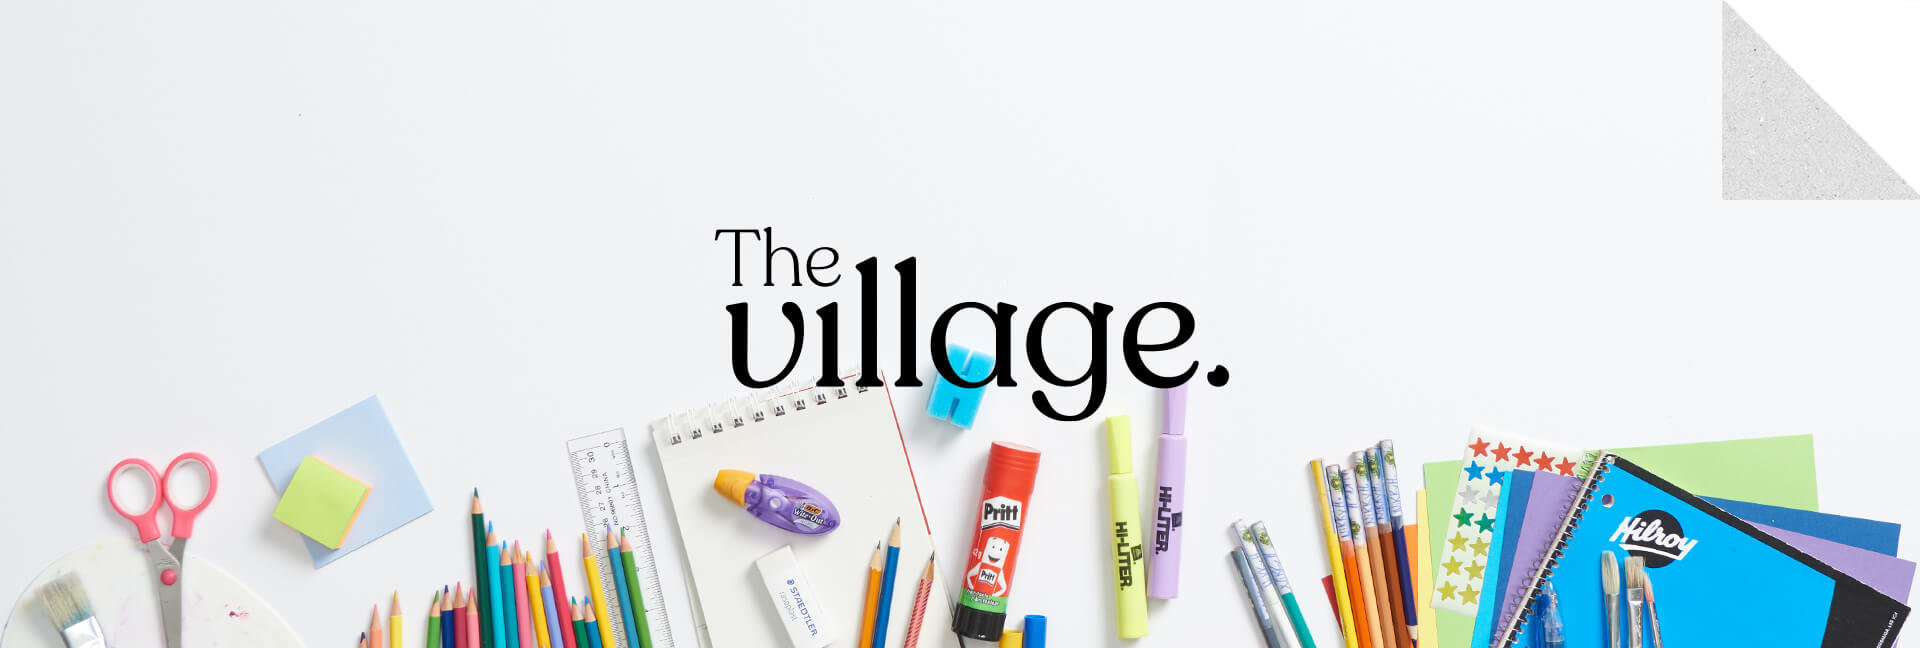 Welcome to The Village